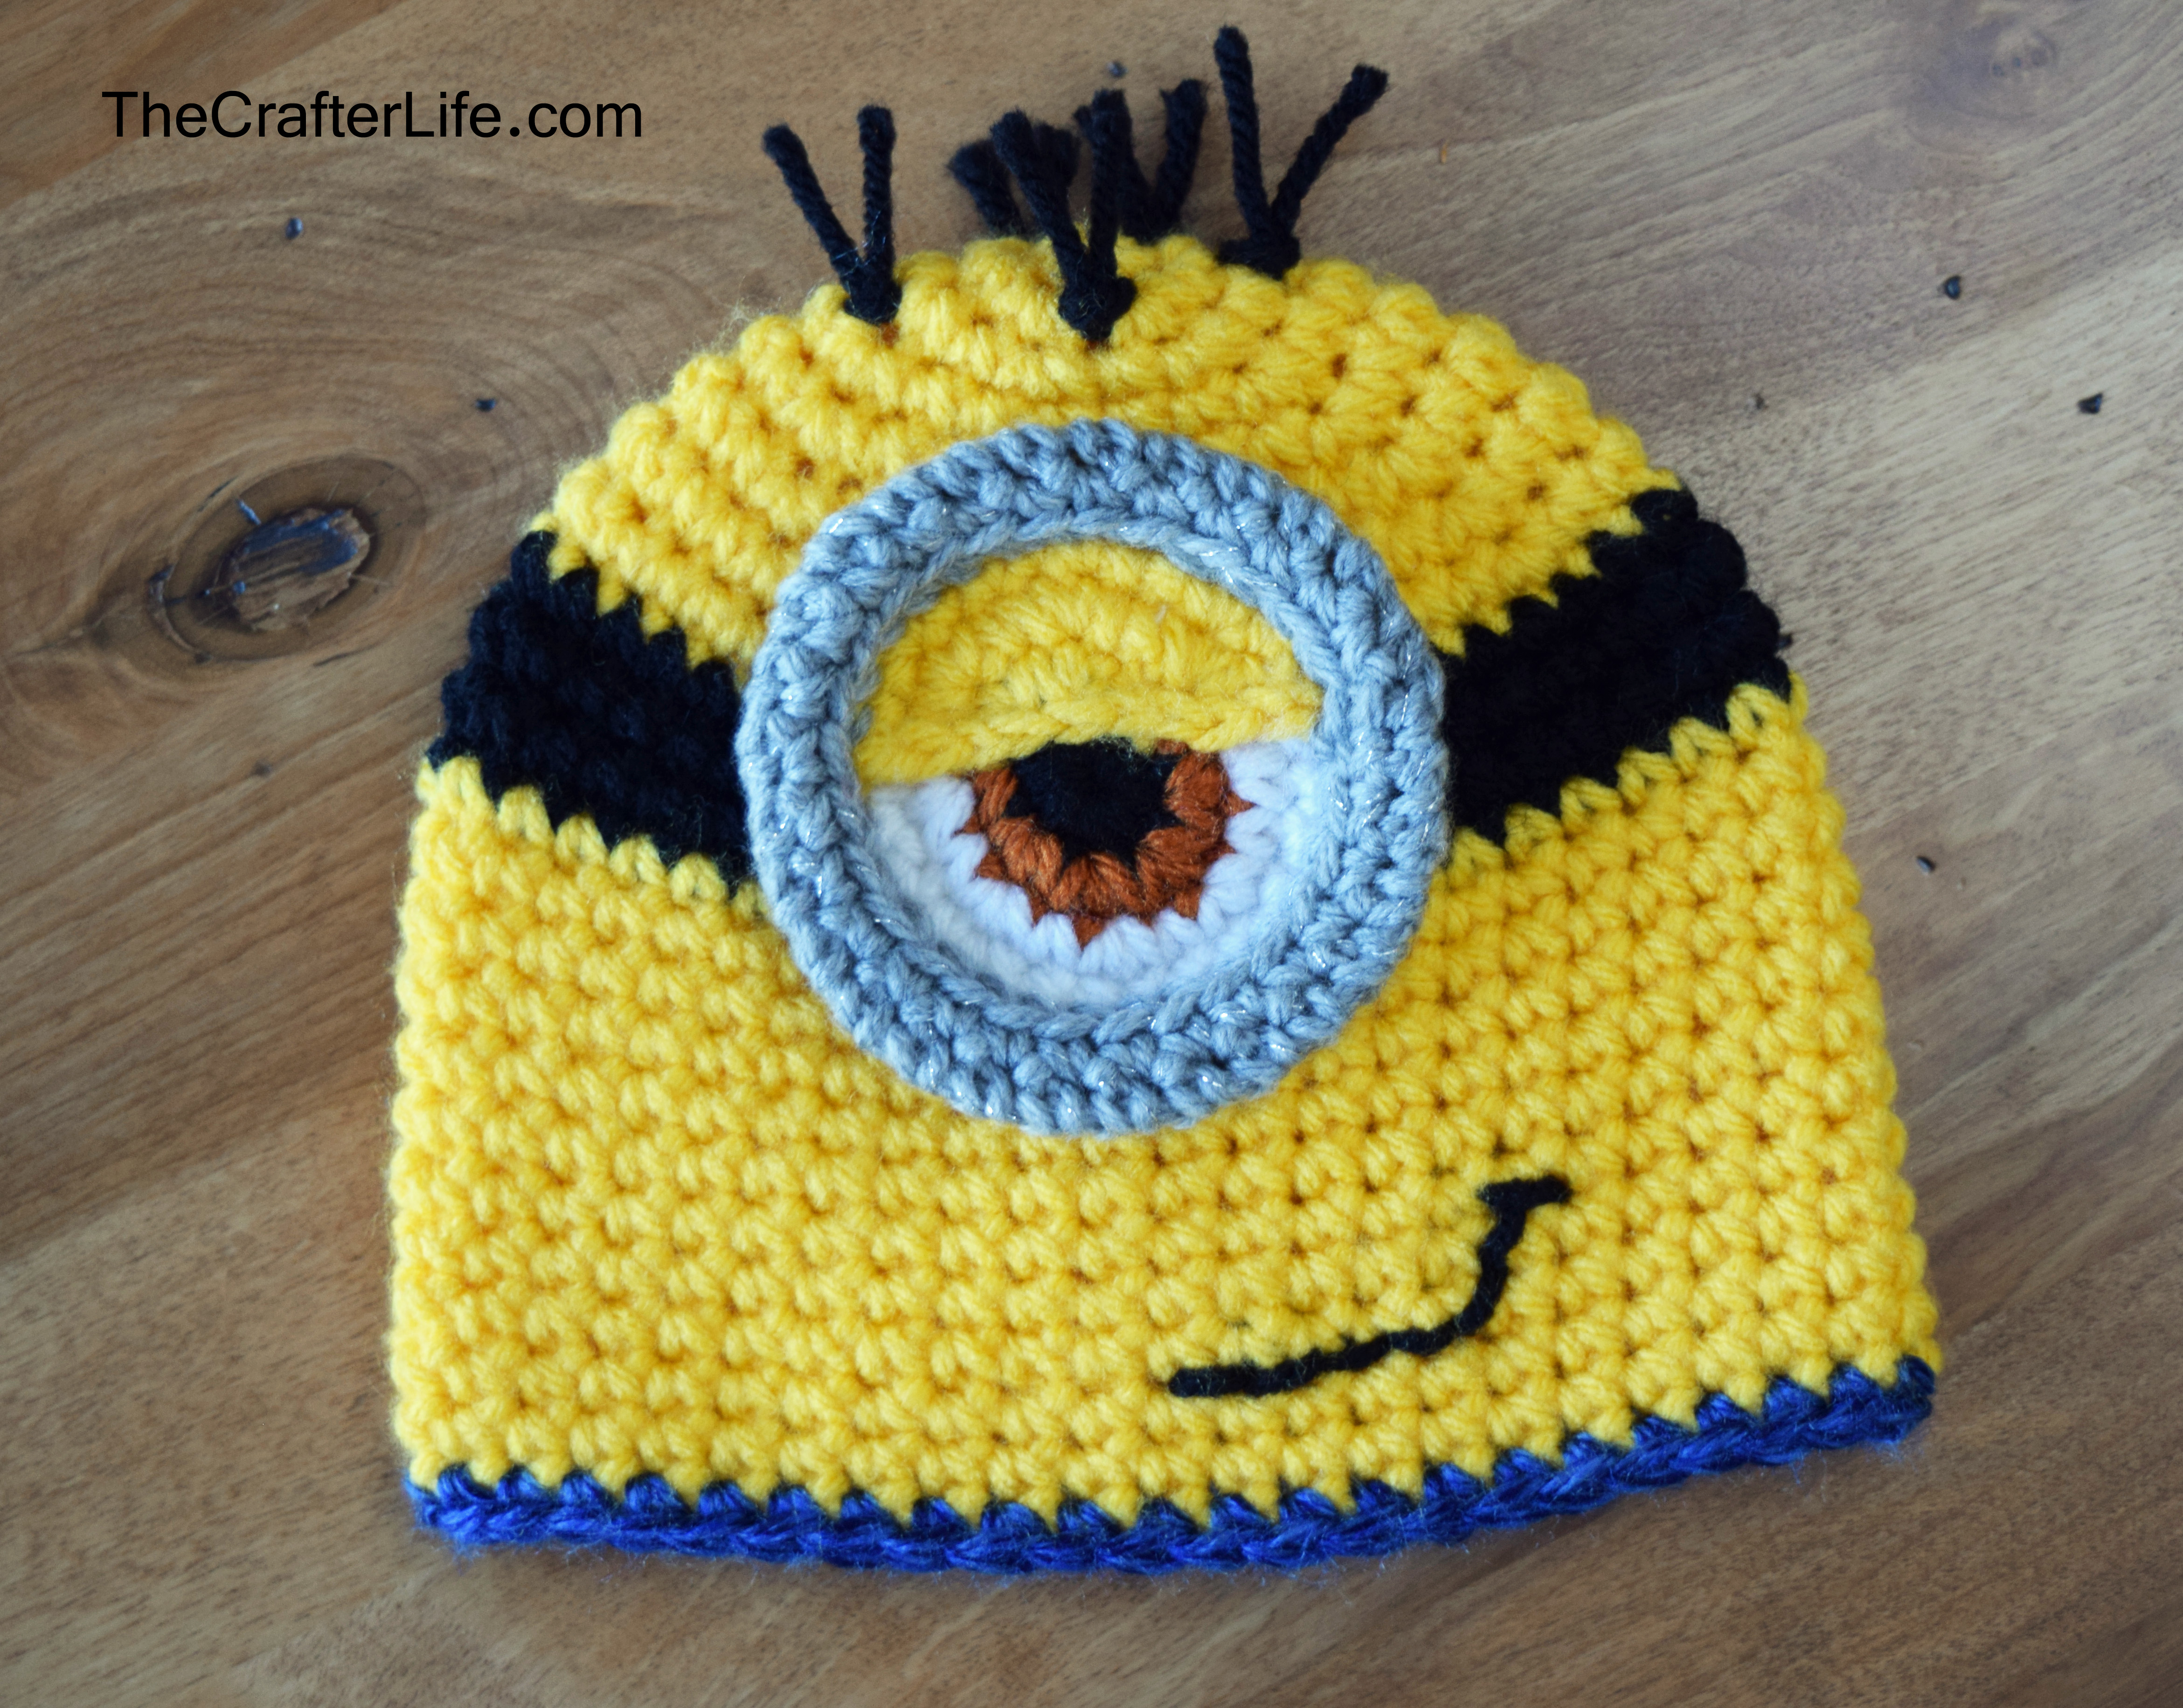 Knitting Patterns For Minion Hats Hat And Bib Set The Crafter Life